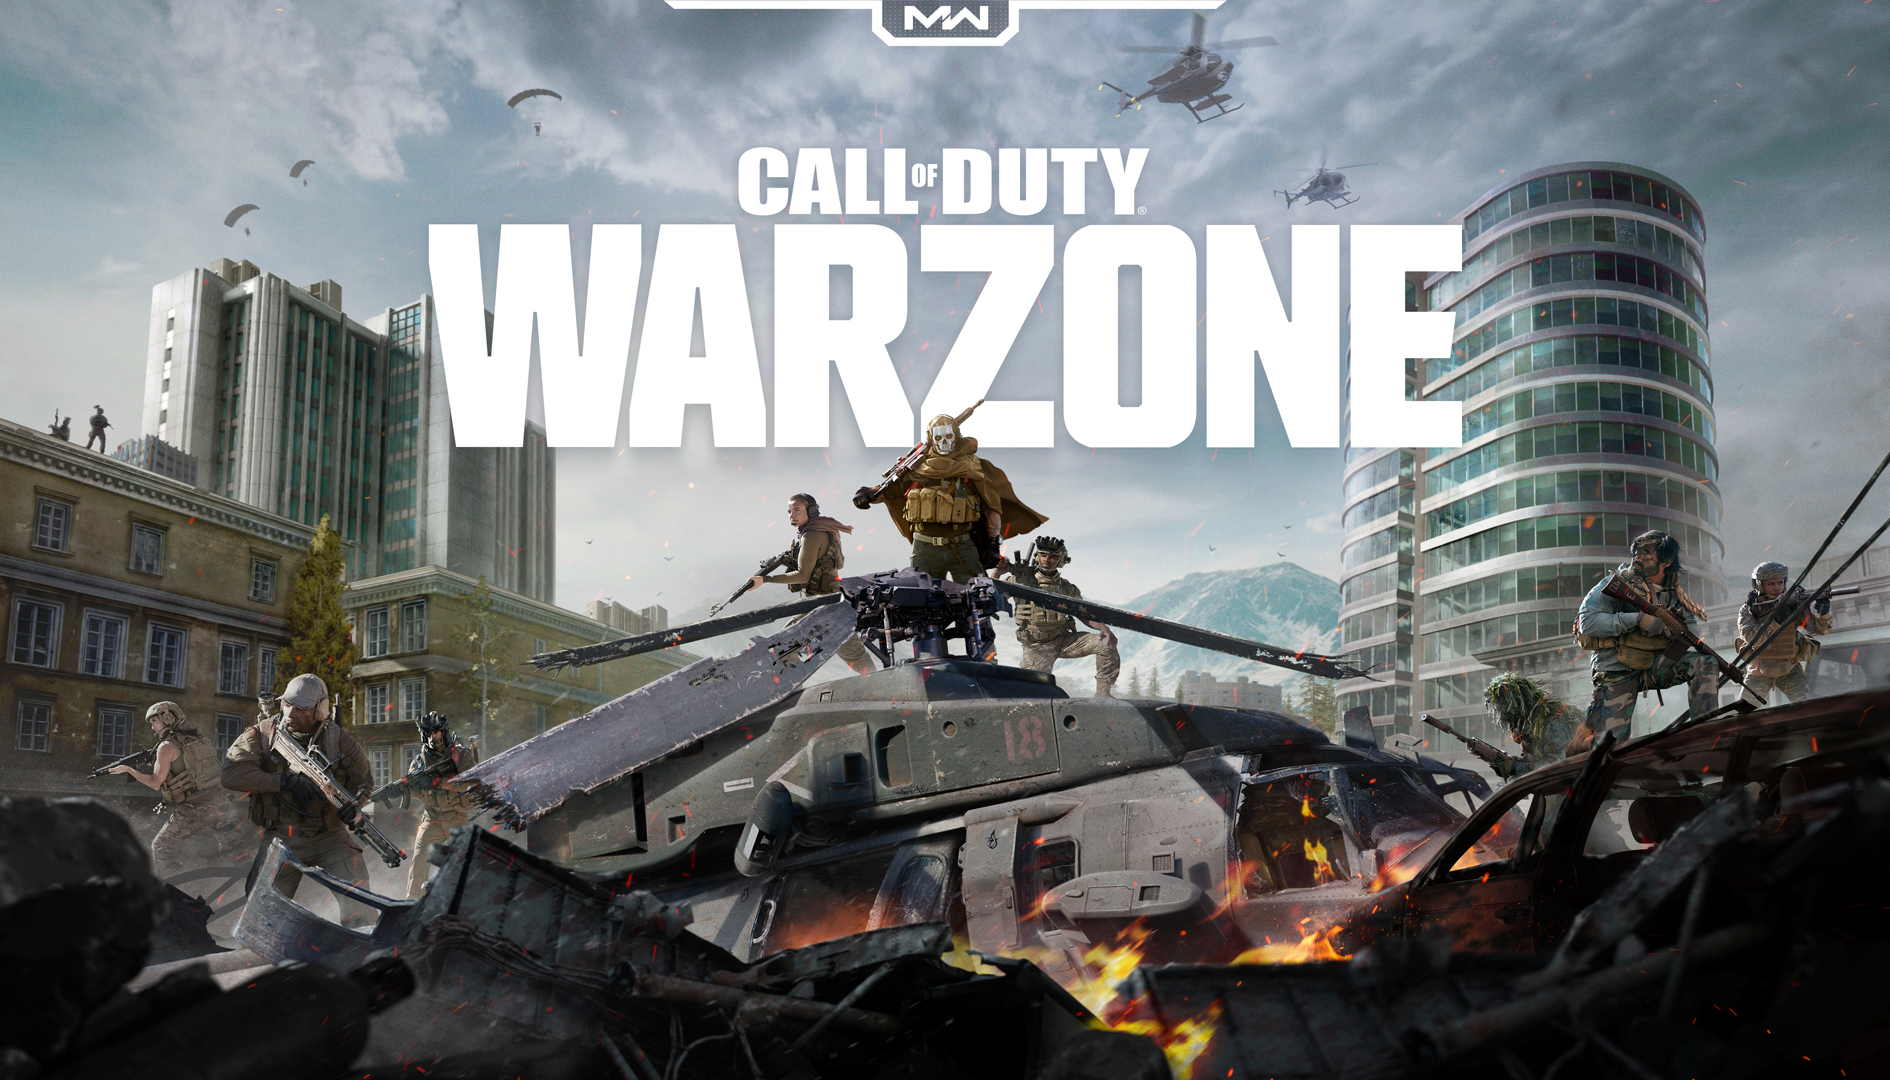 Call of Duty Warzone: come entrare nello stadio grazie a un glitch